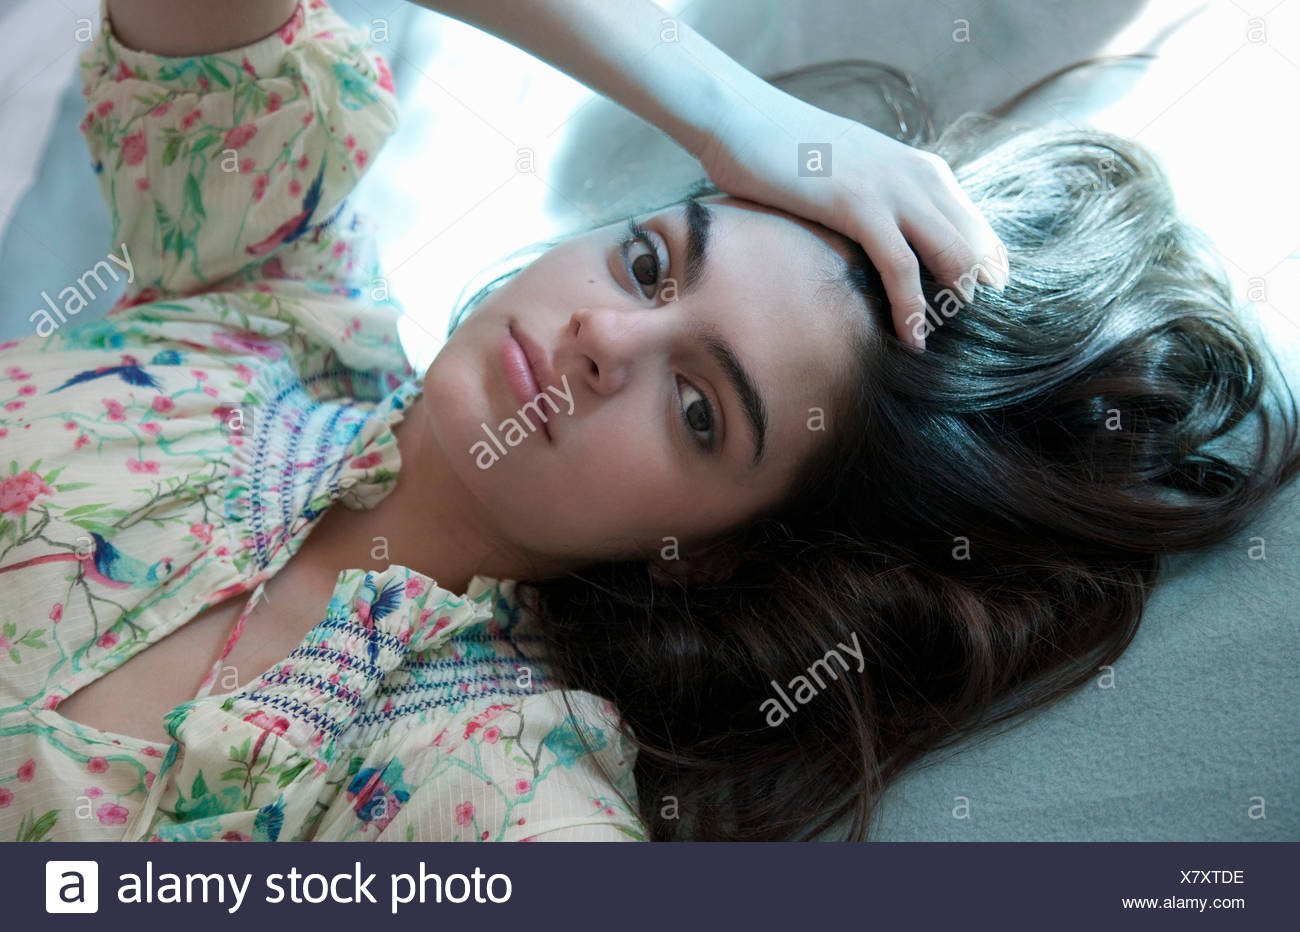 Portrait of young woman in summery dress - Stock Image